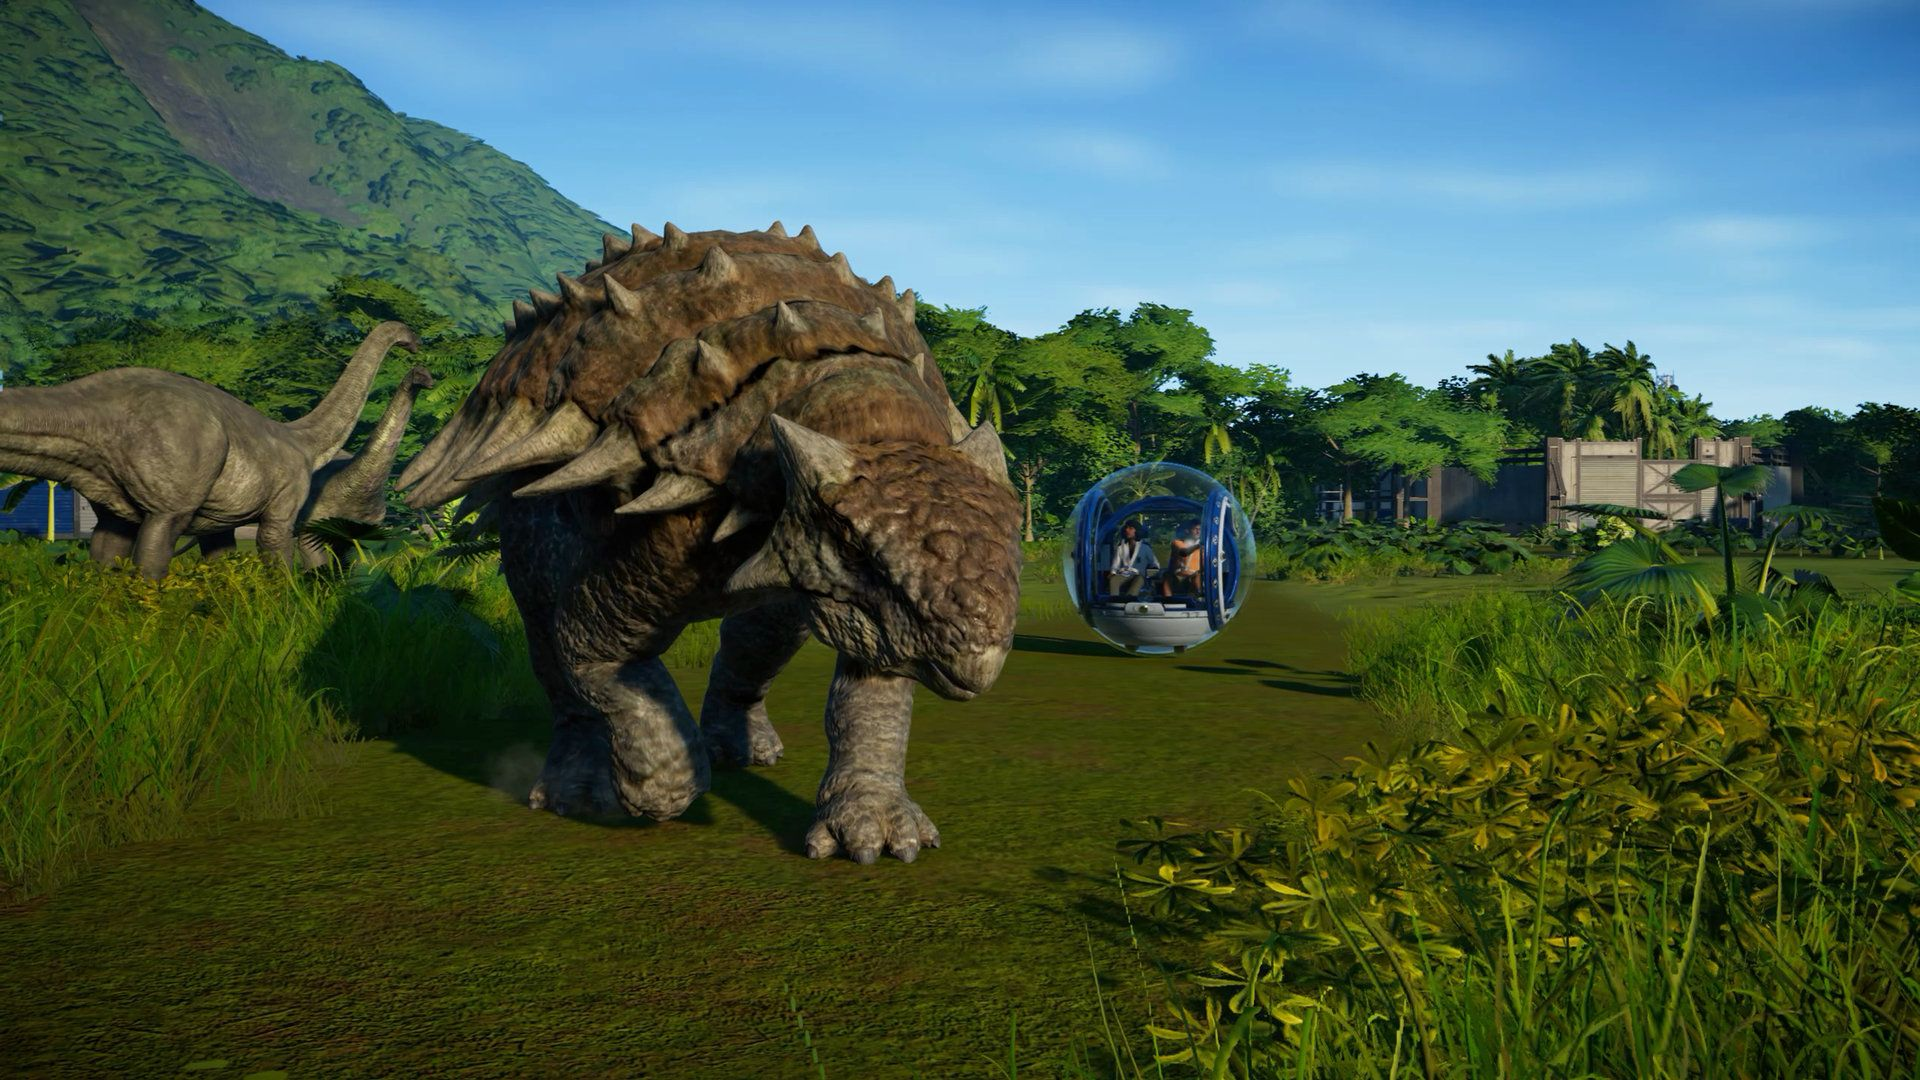 jurassic world video game trailer reveals the simcity